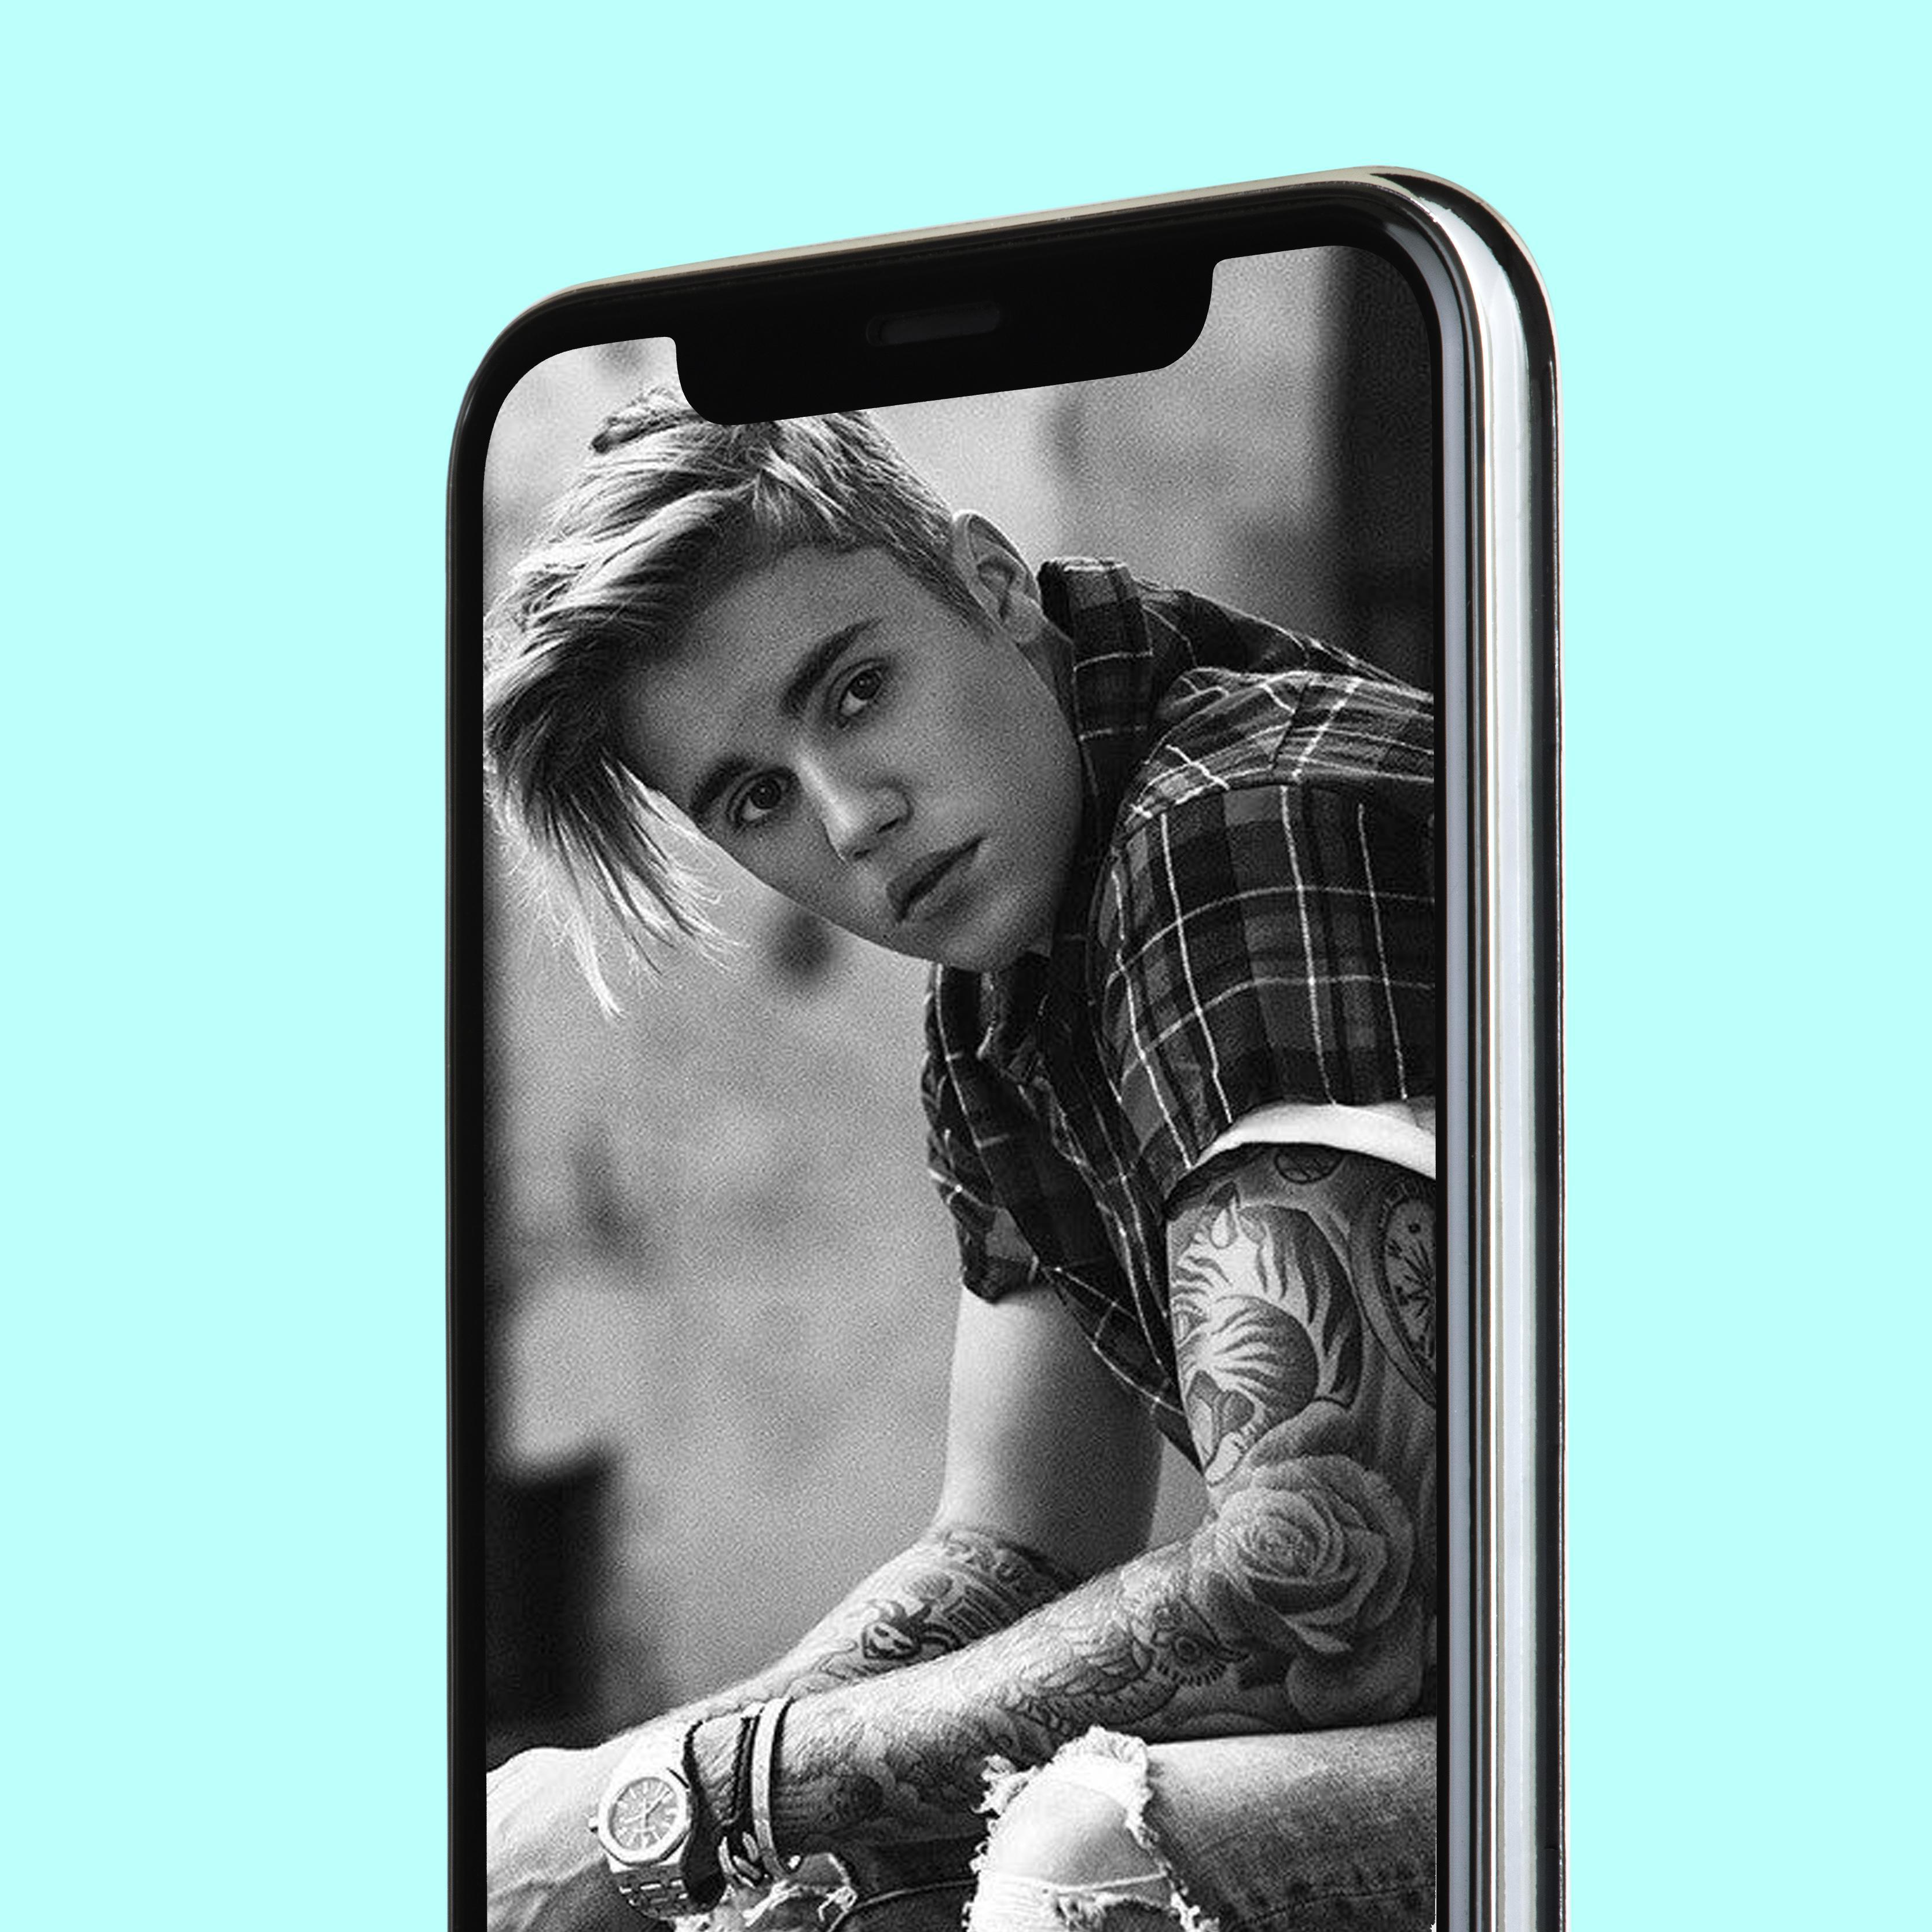 Justin Bieber Wallpaper 2019 Hd For Android Apk Download